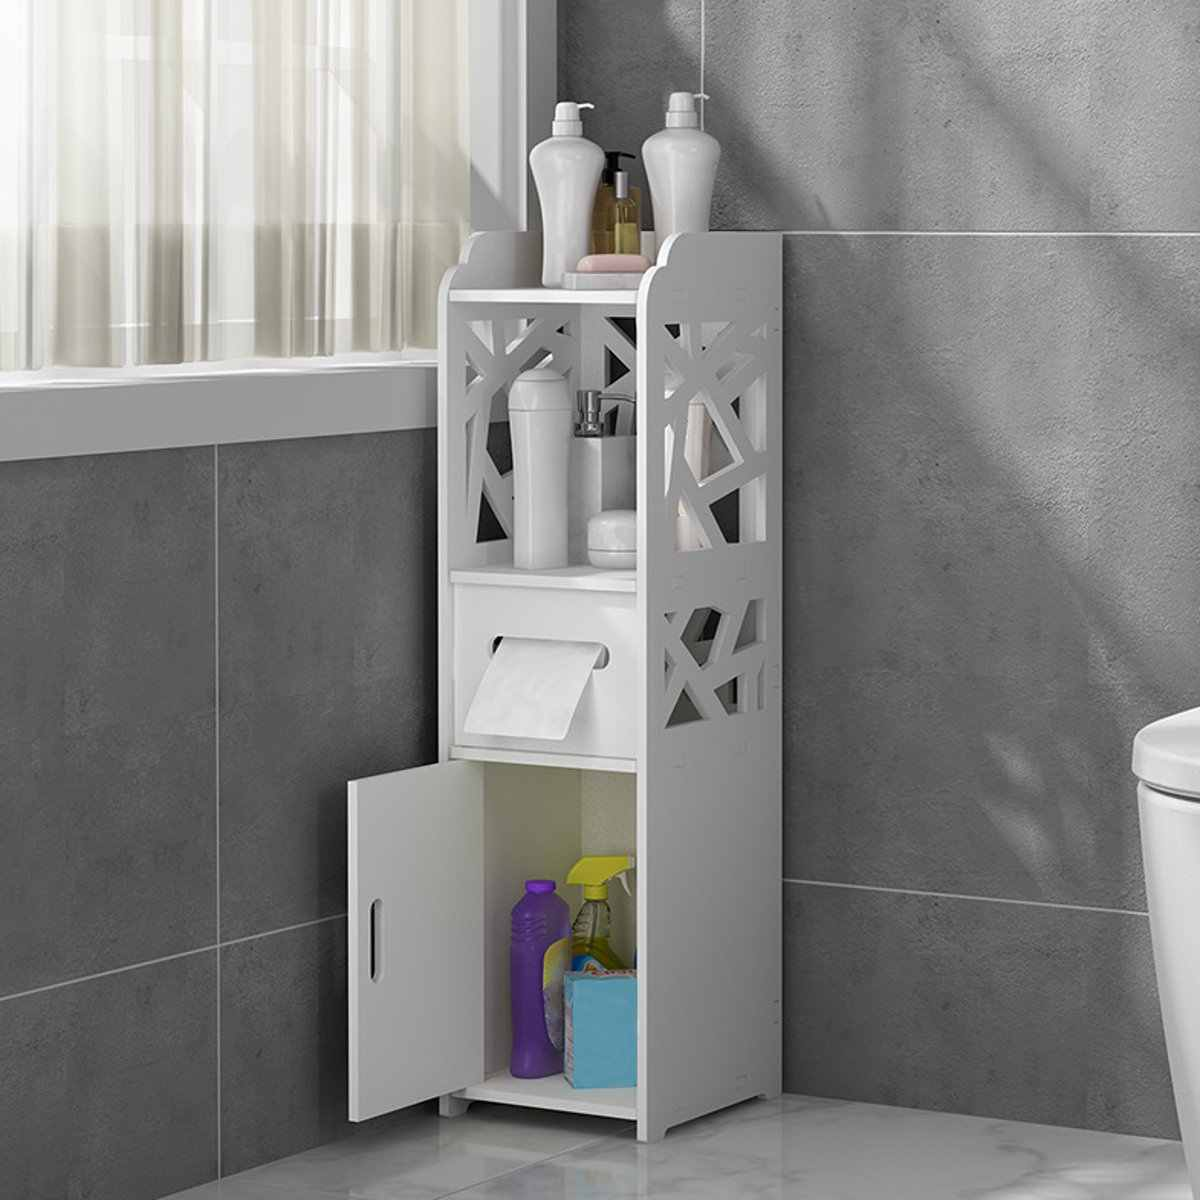 Narrow Bath Sink Organizer Small Bathroom Storage Corner Floor Cabinet With Doors And Shelves Thin Toilet Vanity Cabinet Storage Holders Racks Aliexpress